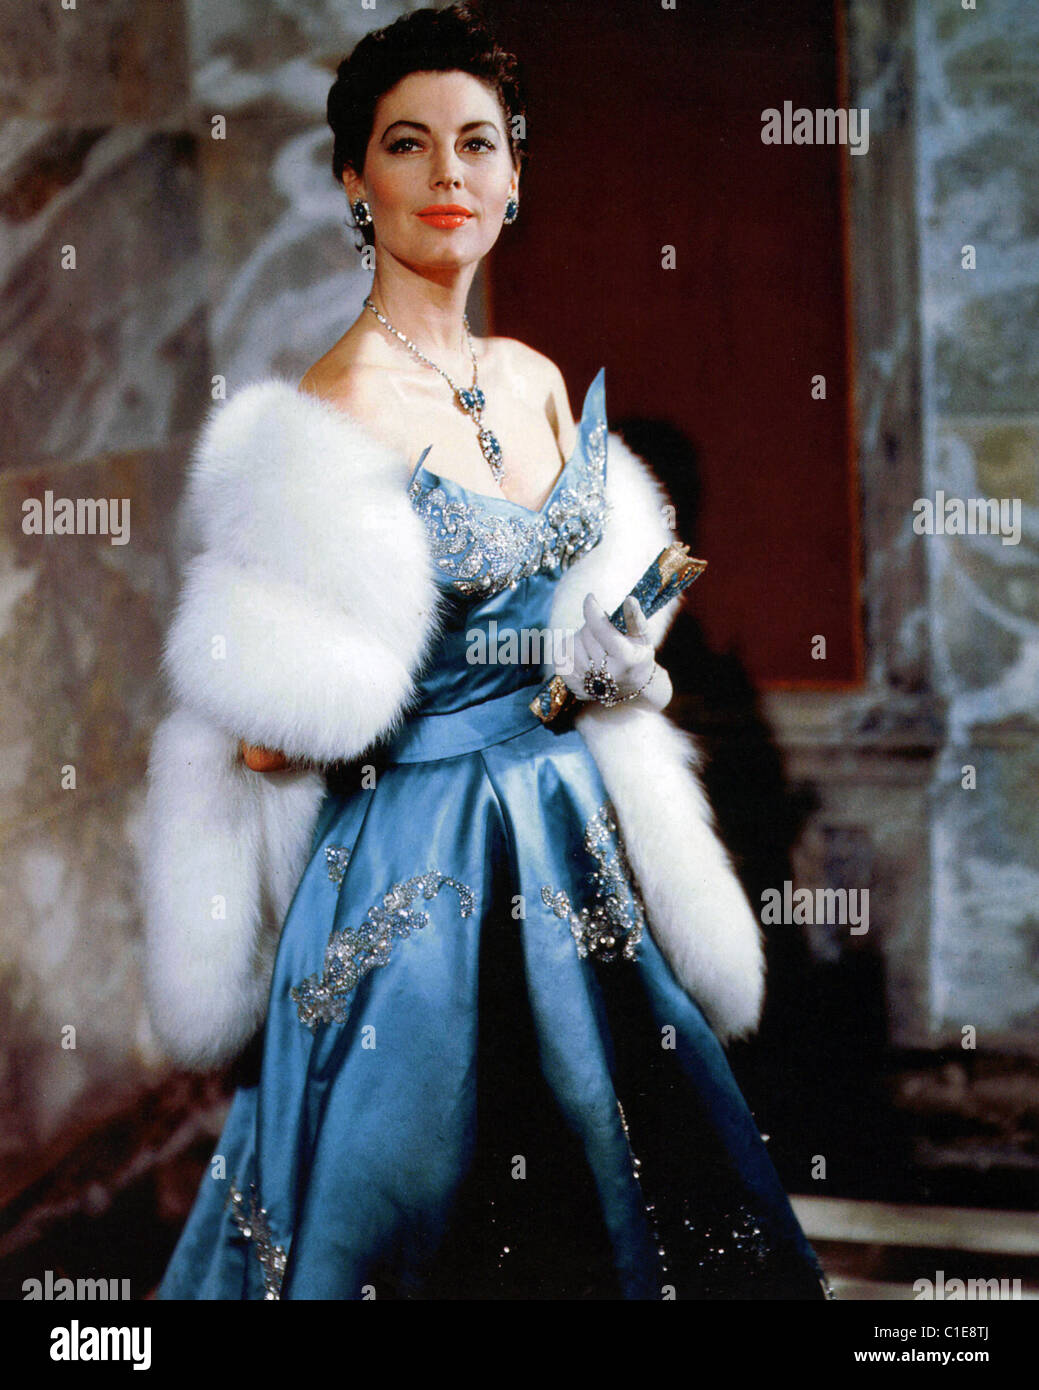 THE BAREFOOT CONTESSA 1954 United Artists film with Ava Gardner - Stock Image